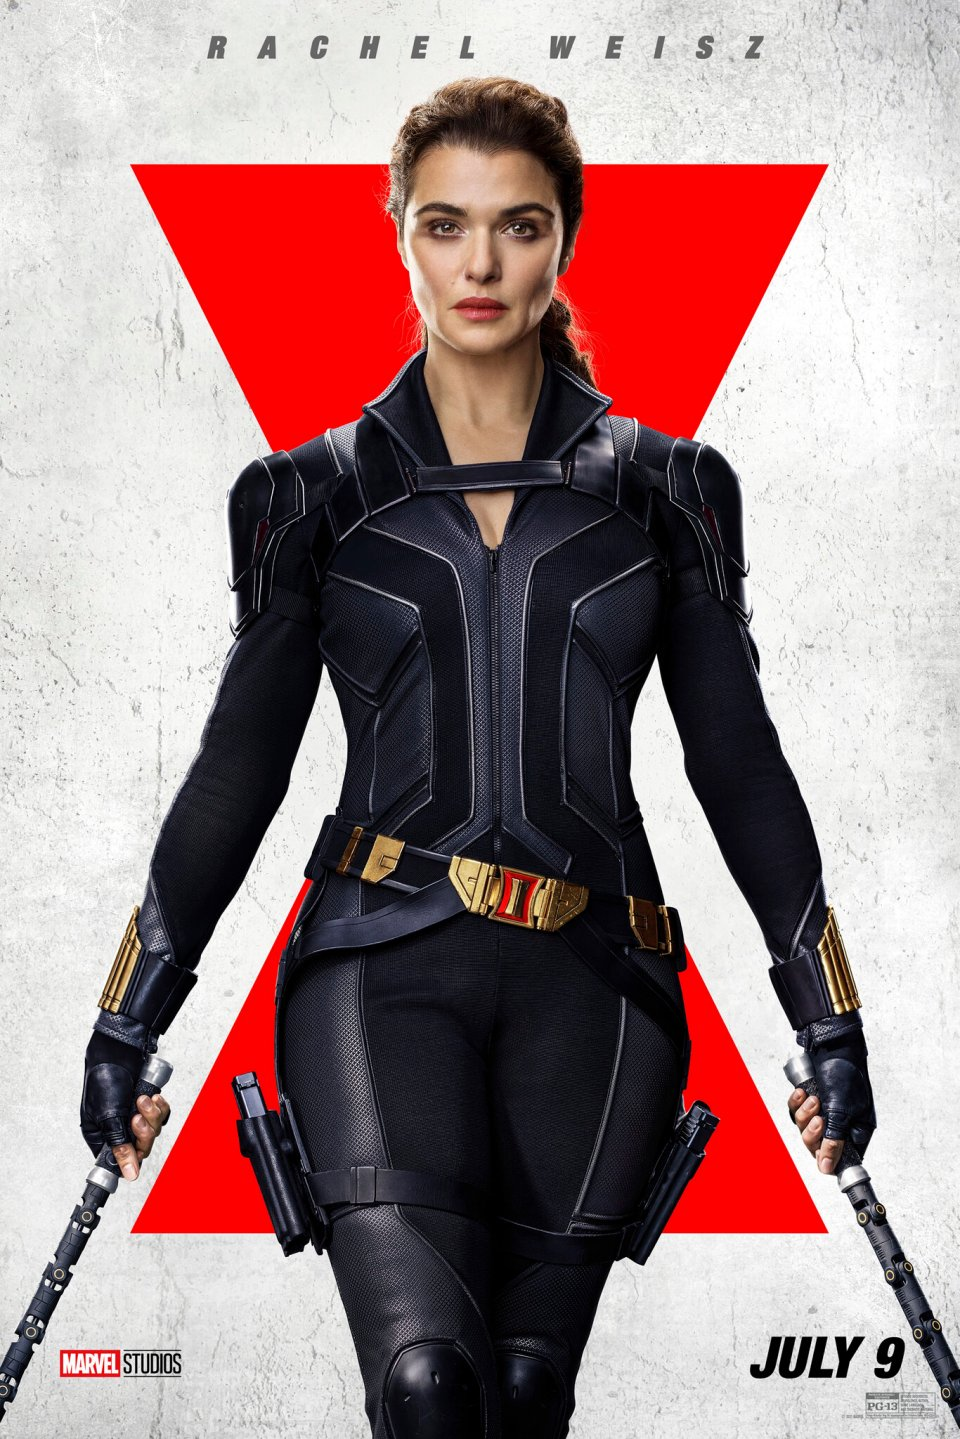 new-character-poster-for-marvels-black-widow5.jpeg